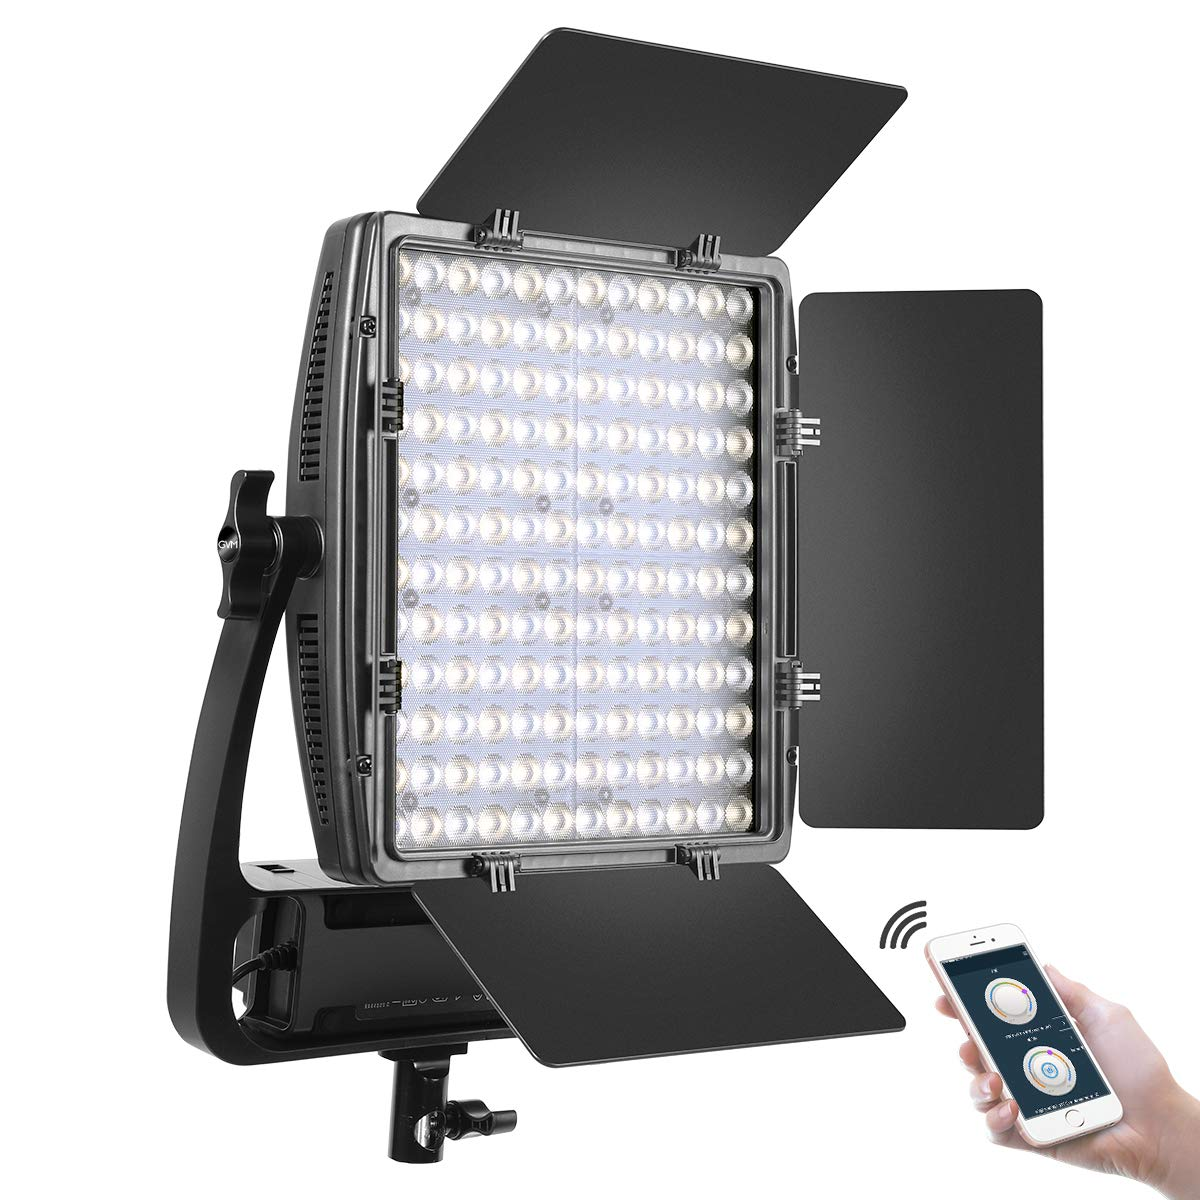 GVM LED Video Lighting Panel with (1 Pack) Optical Lens, 50W Bi-Color 2X Ultra Bright, 3200K-5600K High CRI/TLCI 97+ Professional Studio Photography Lighting with APP Barn Doors Soft Diffuser by GVM Great Video Maker